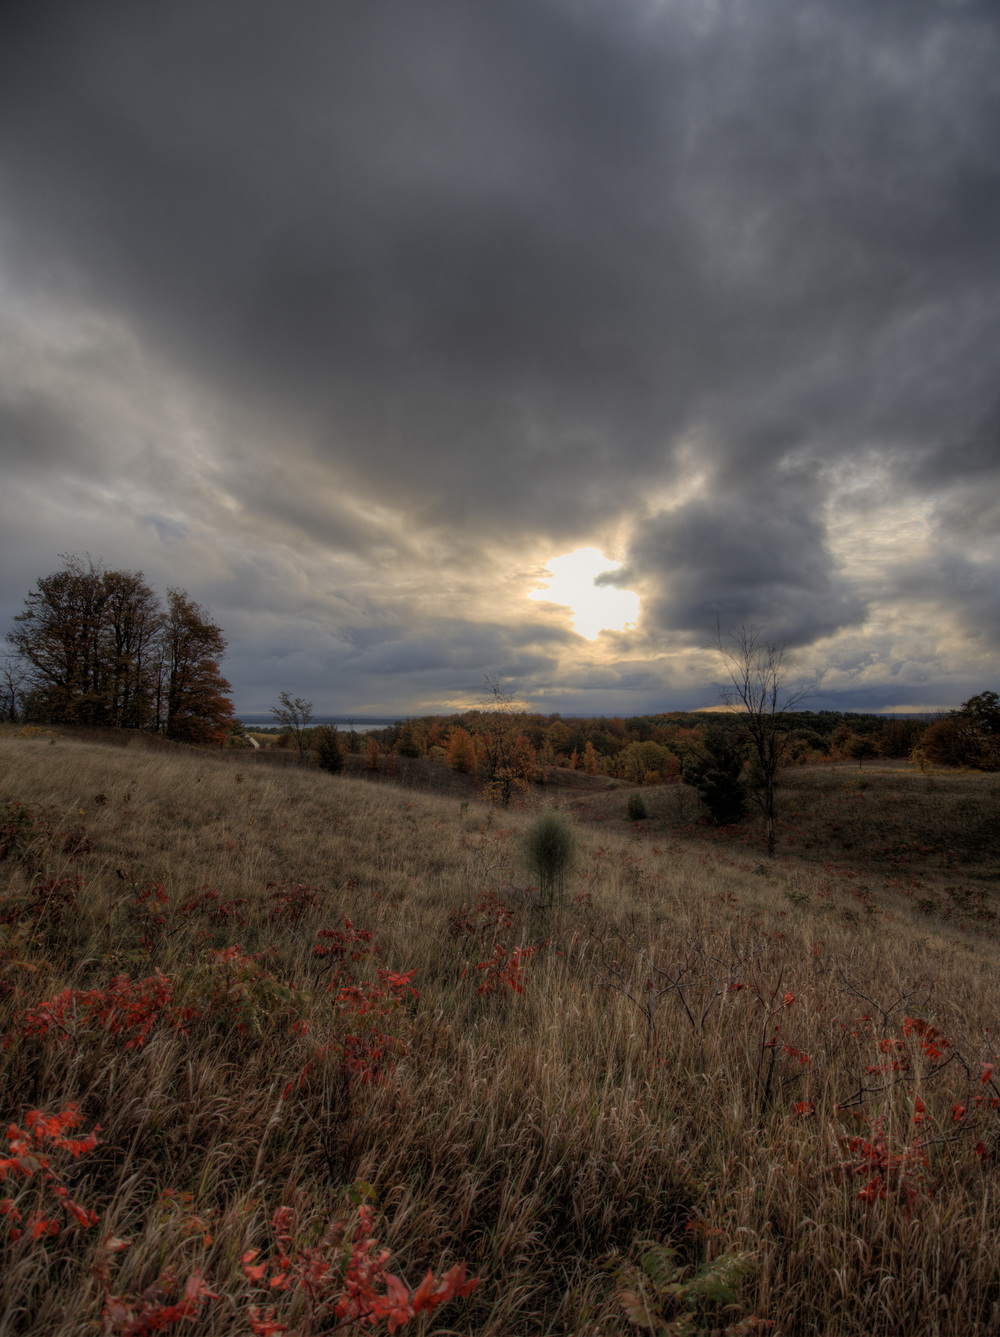 Taken with the Olympus OM-D and mZuiko 9-18mm along M37 on Old Mission Peninsula